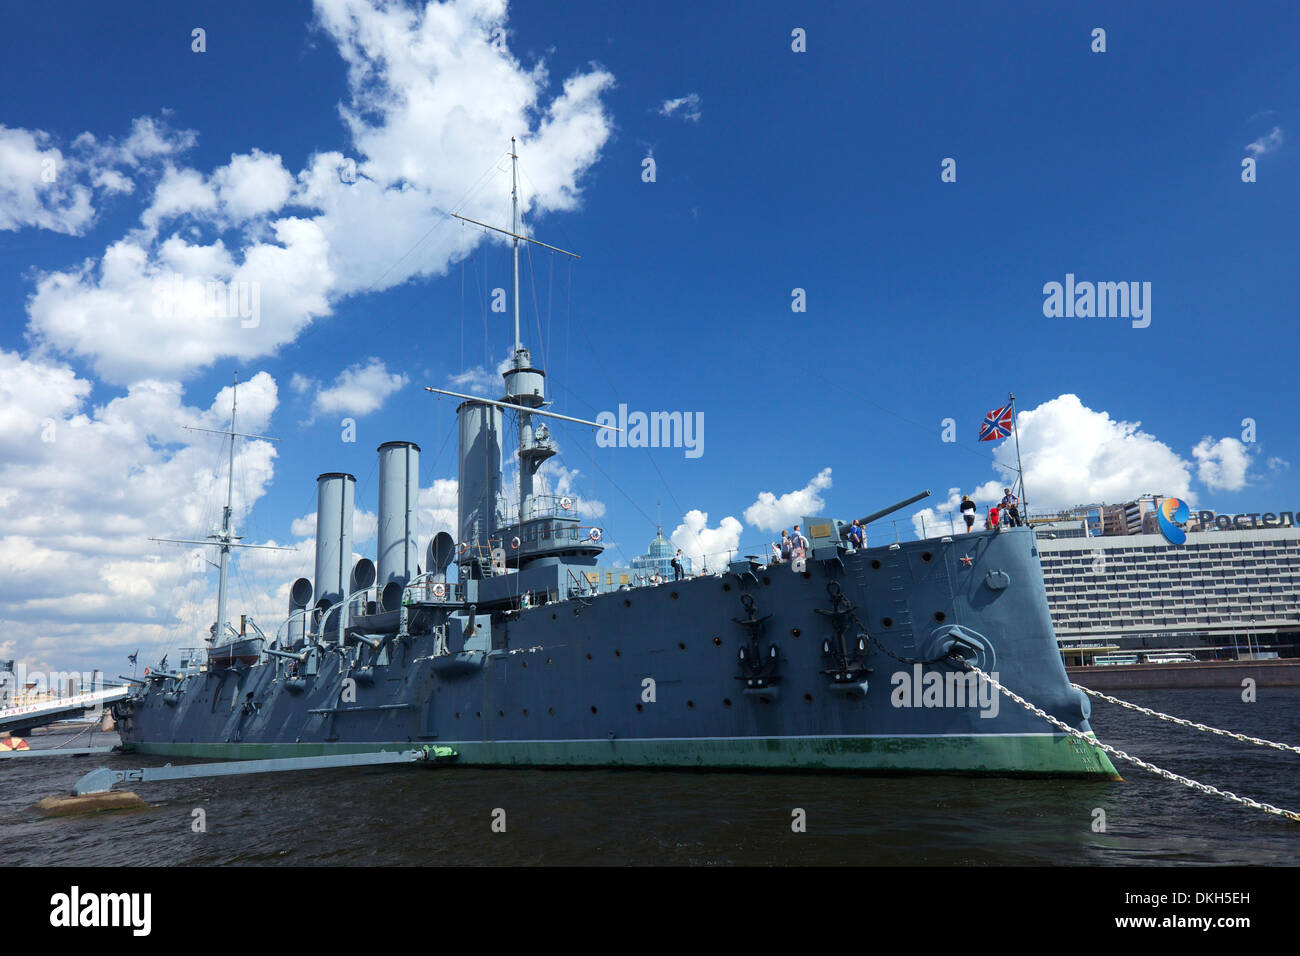 Aurora Cruiser on River Neva, Naval Academy, St. Petersburg, Russia, Europe - Stock Image